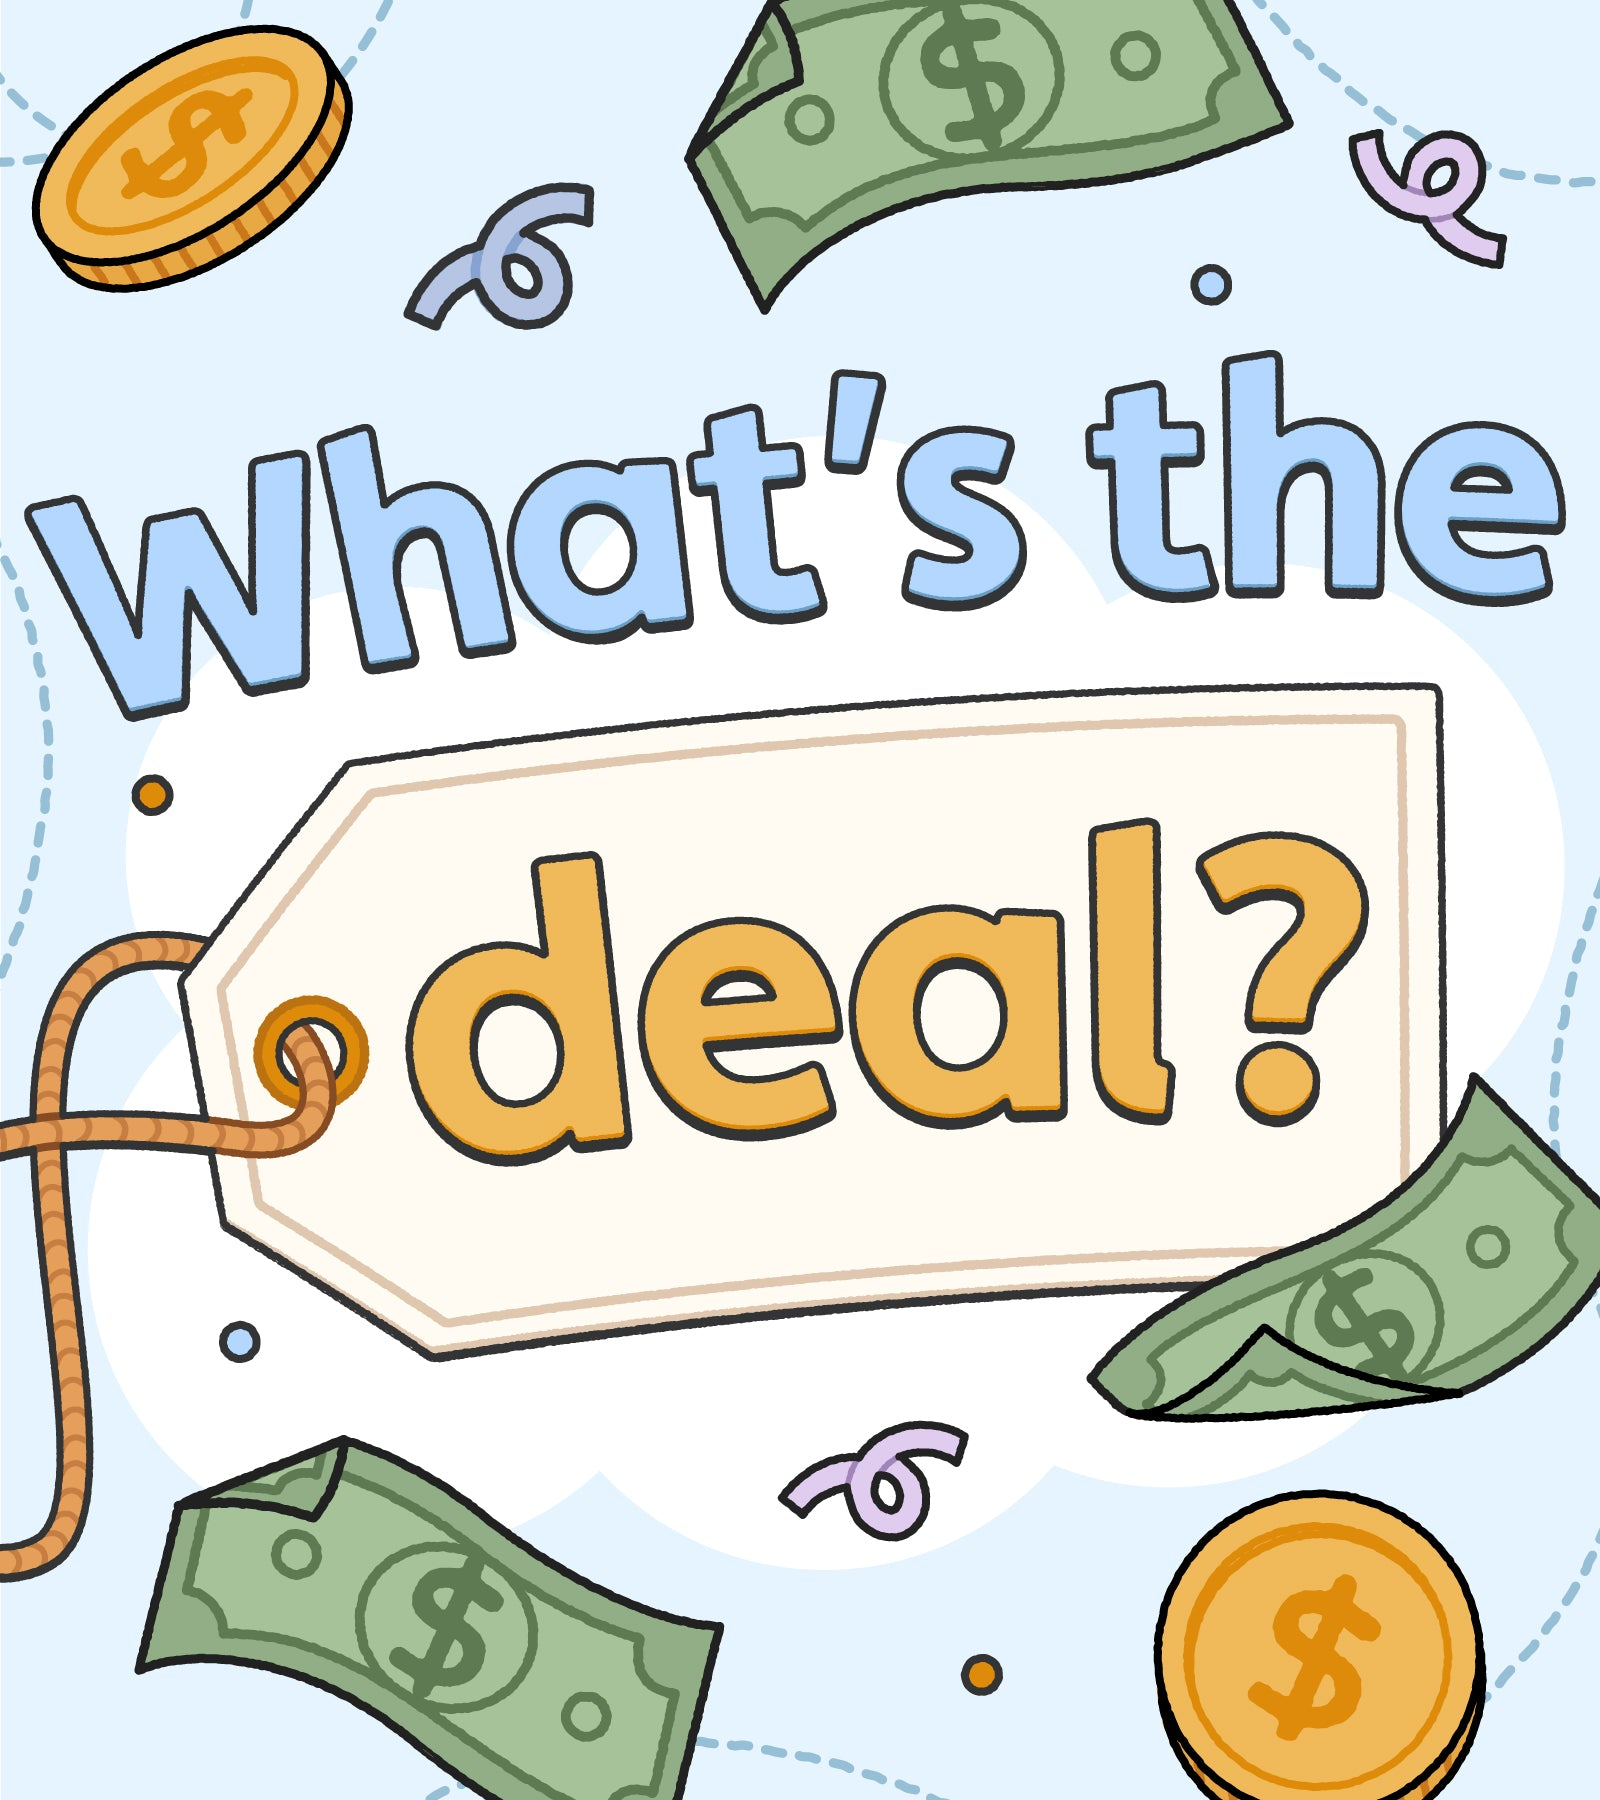 """Illustrated headline """"What's the Deal?"""" with coins, money, and price tag"""